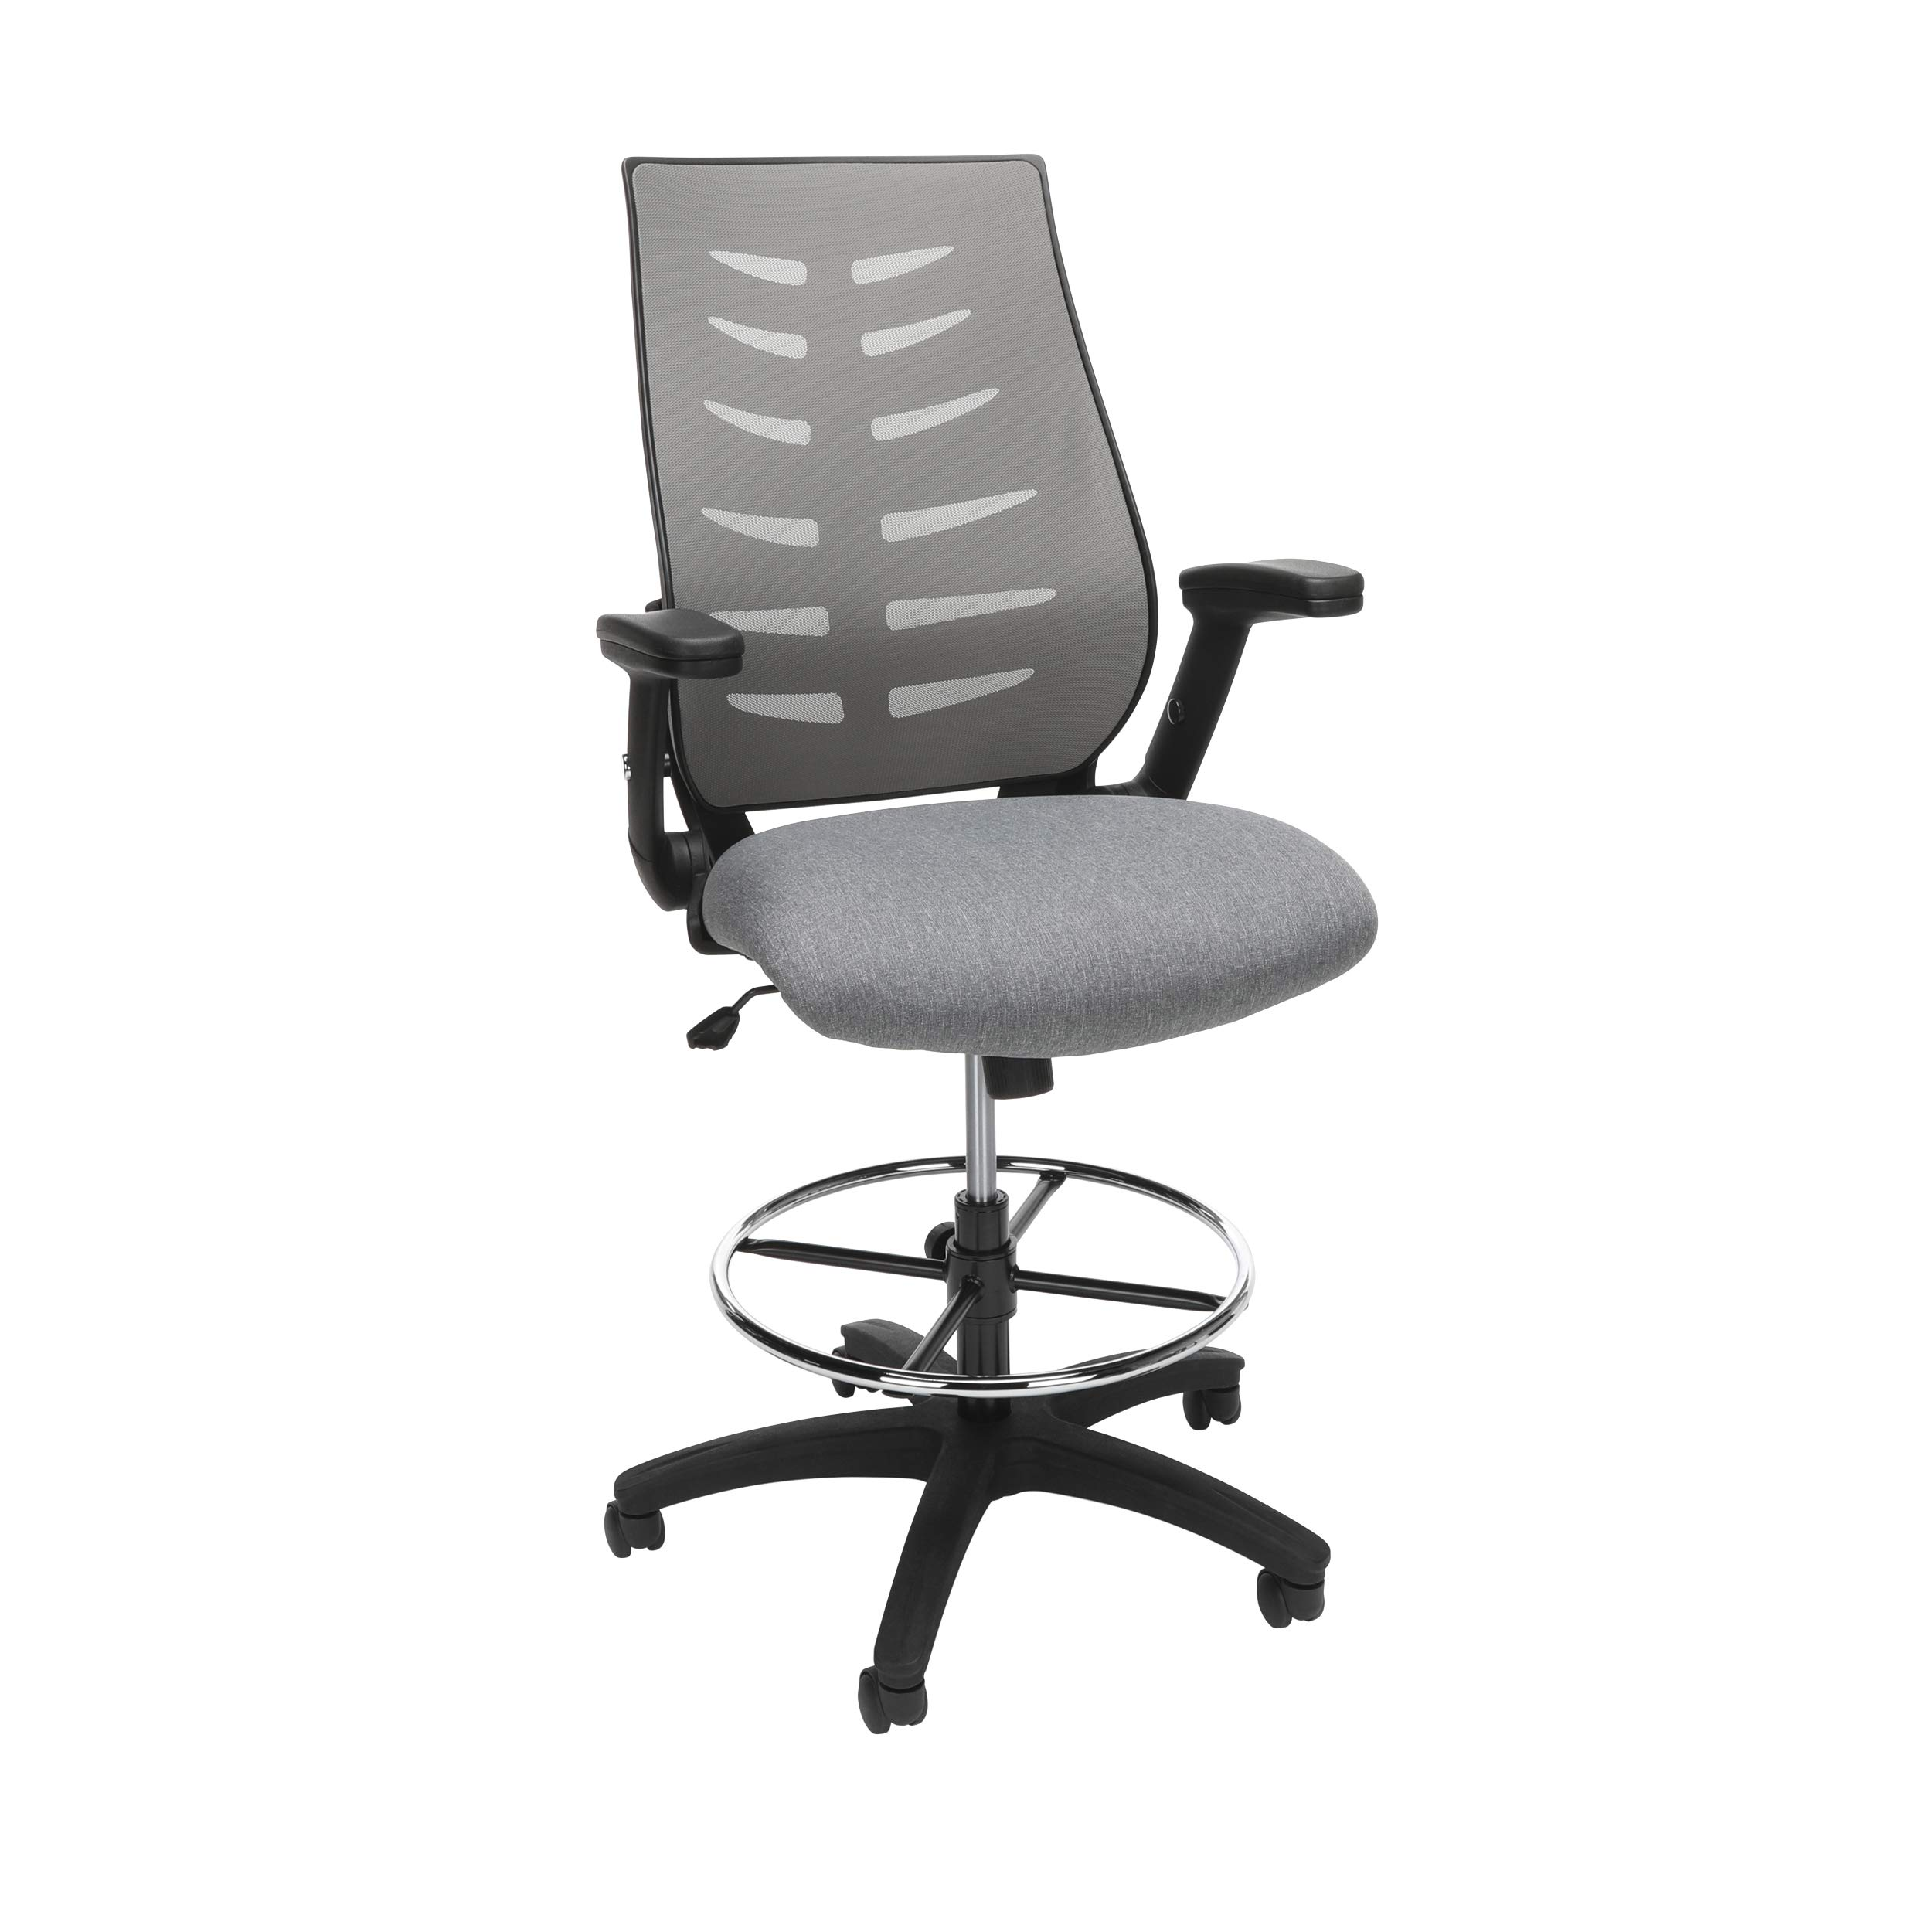 OFM Core Collection Mid Back Mesh Drafting Chair, Drafting Stool, with Lumbar Support, in Gray by OFM